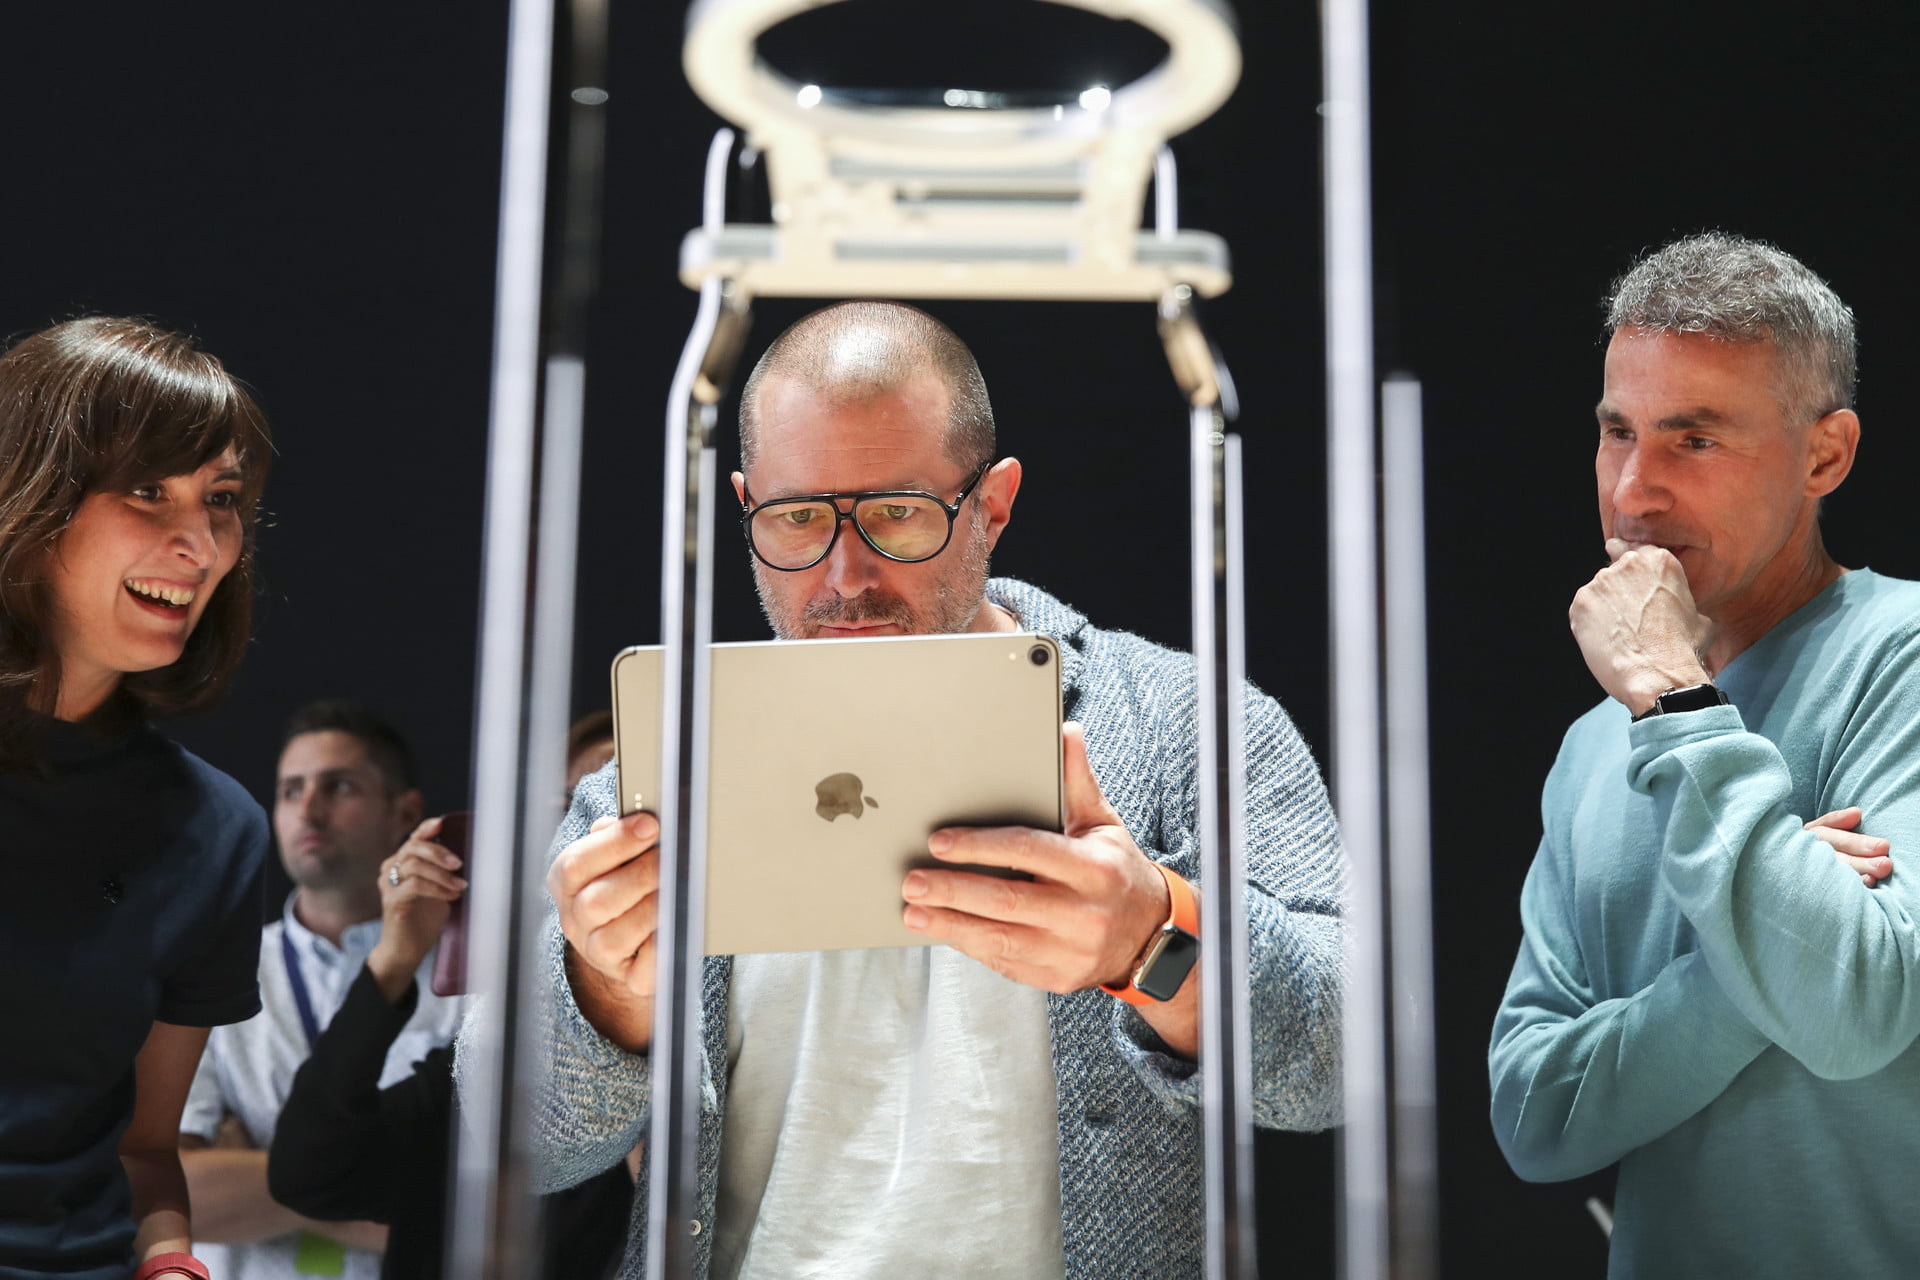 Apple chief design officer Jony Ive (middle) tests out a product at the 2019 Apple Worldwide Developer Conference.